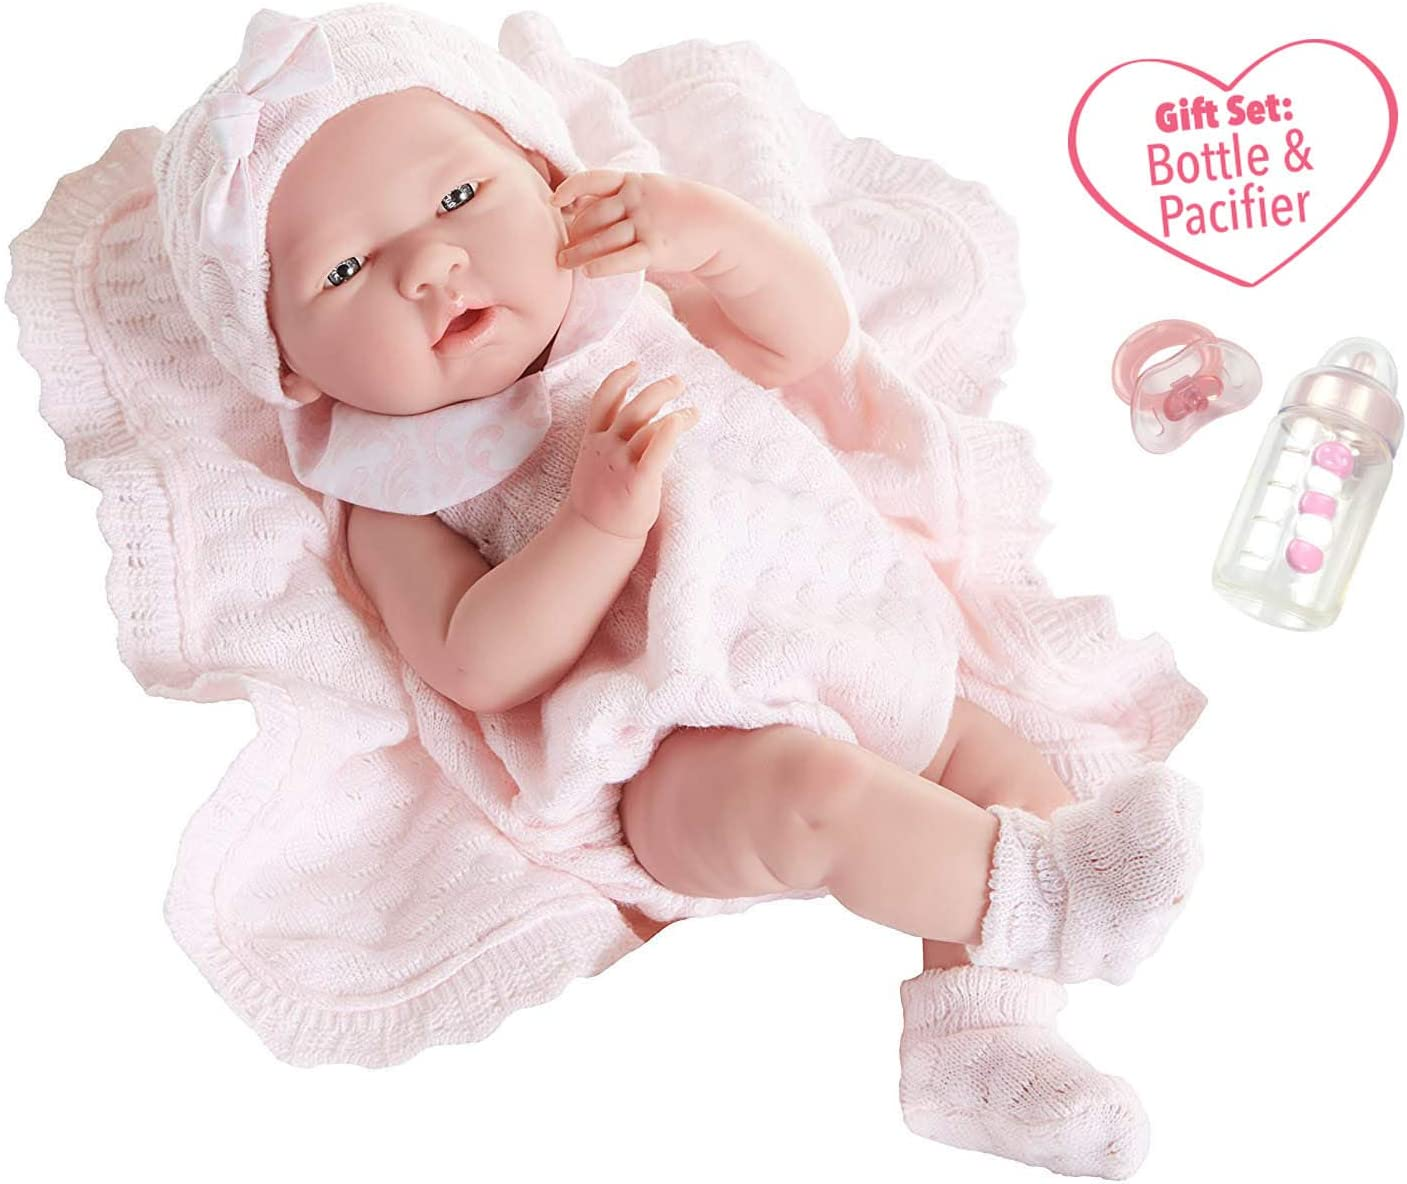 Top 10 Best Silicone Baby Dolls (2020 Reviews & Buying Guide) 2